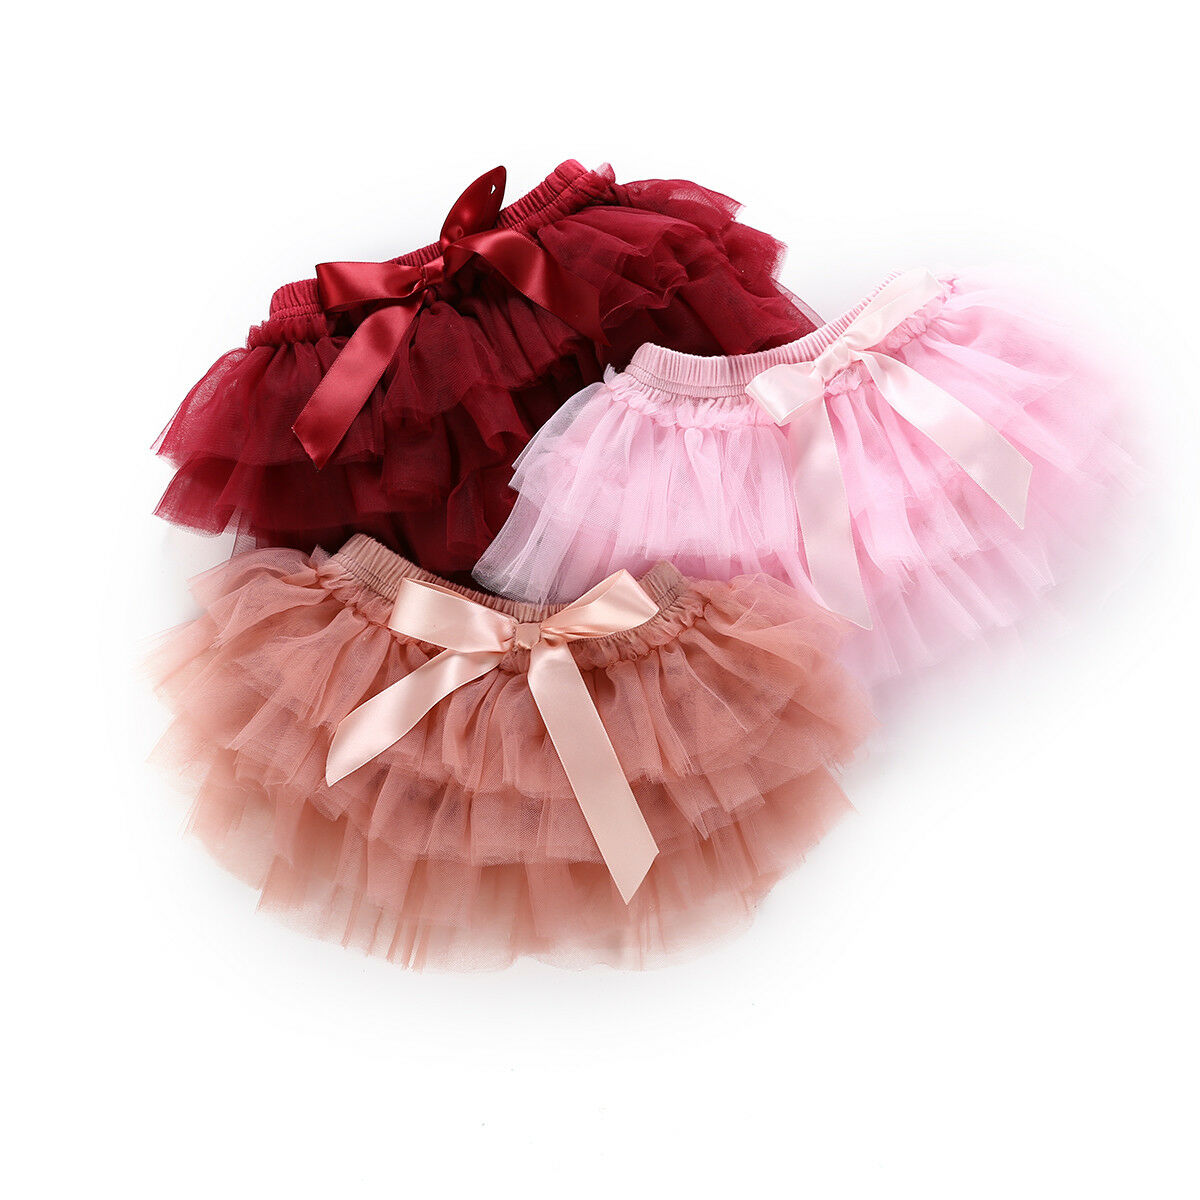 0-24M Infant Newborn Baby Girls Tutu Skirts Princess Bow Tulle Ball Gown Skirts Christmas Baby Girl Red Costumes + Headband